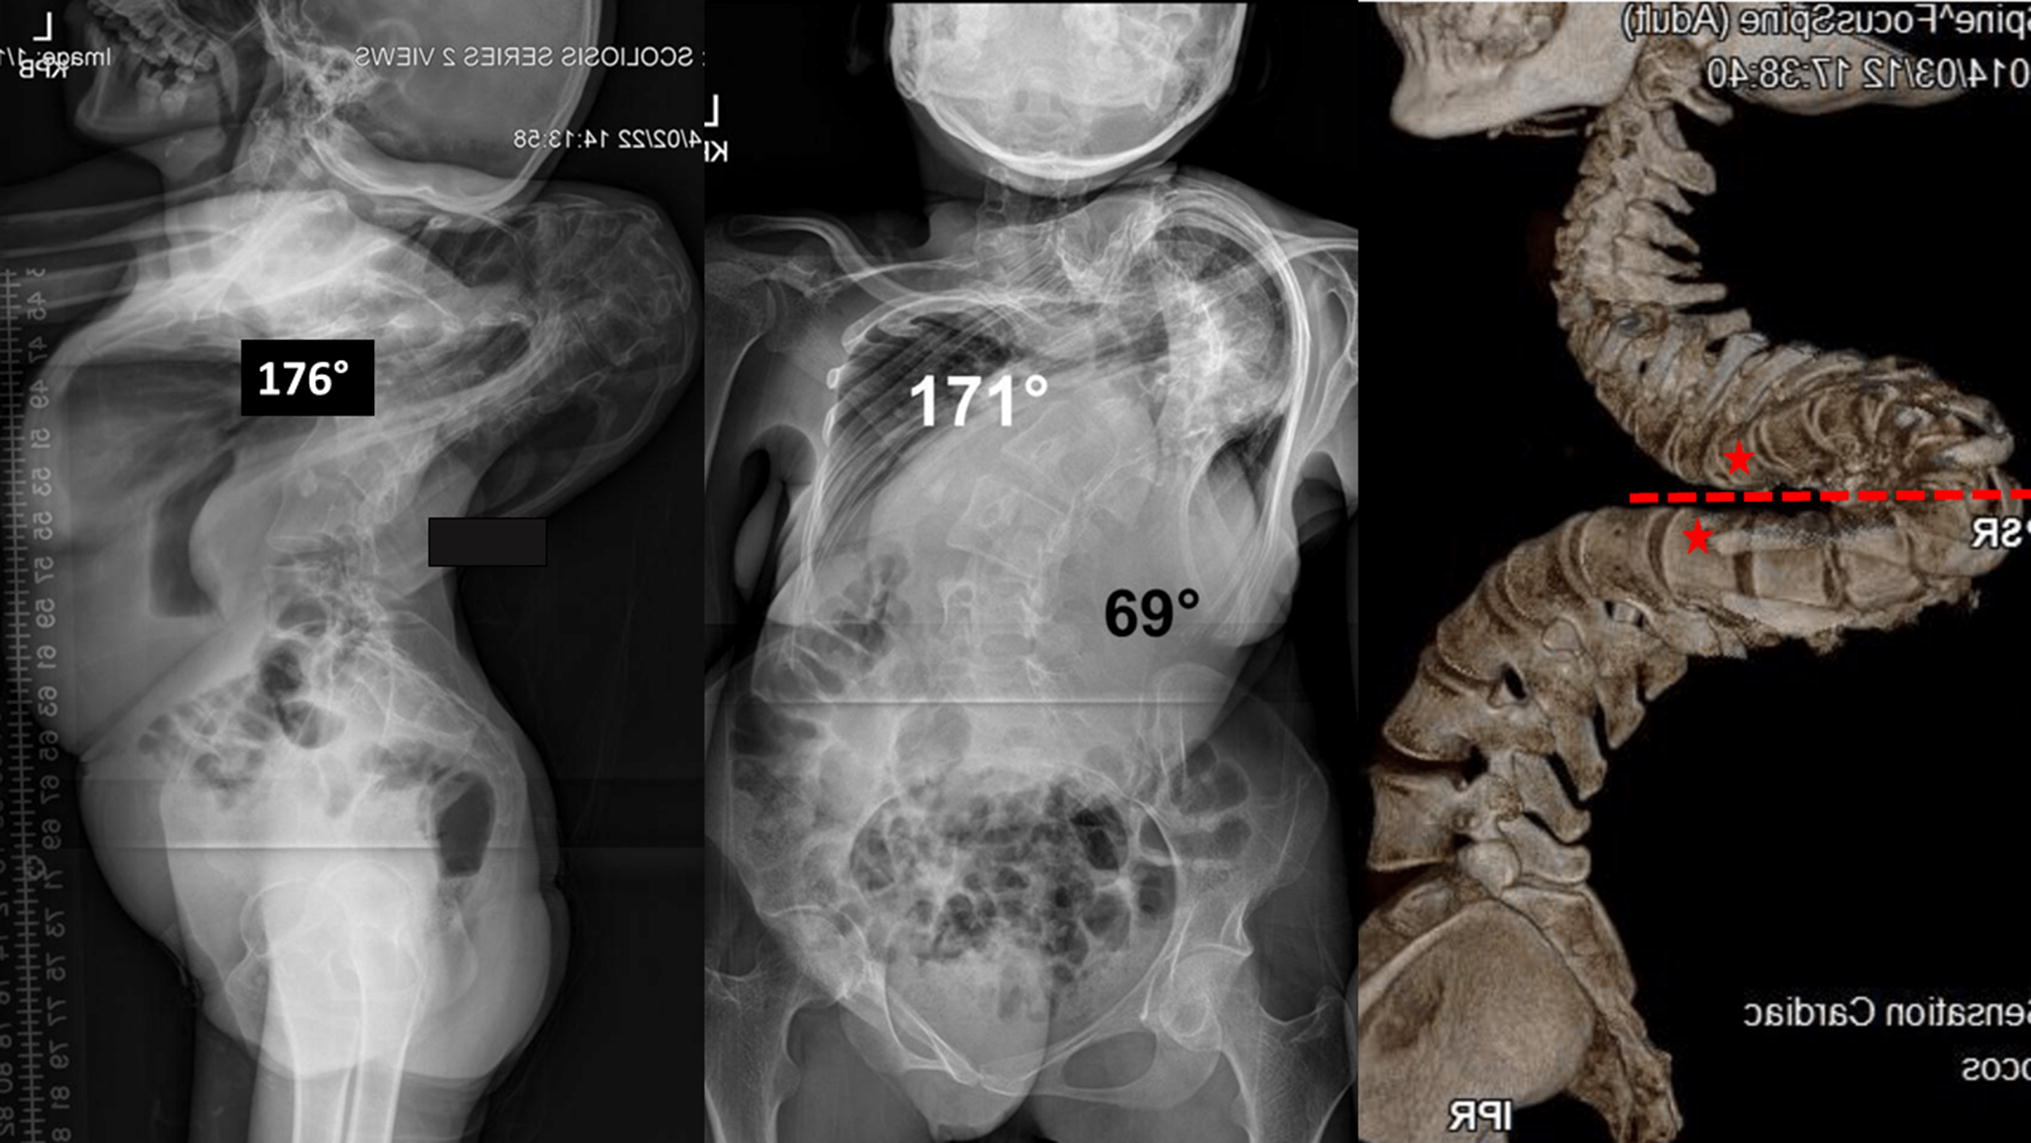 A novel radiographic classification of severe spinal